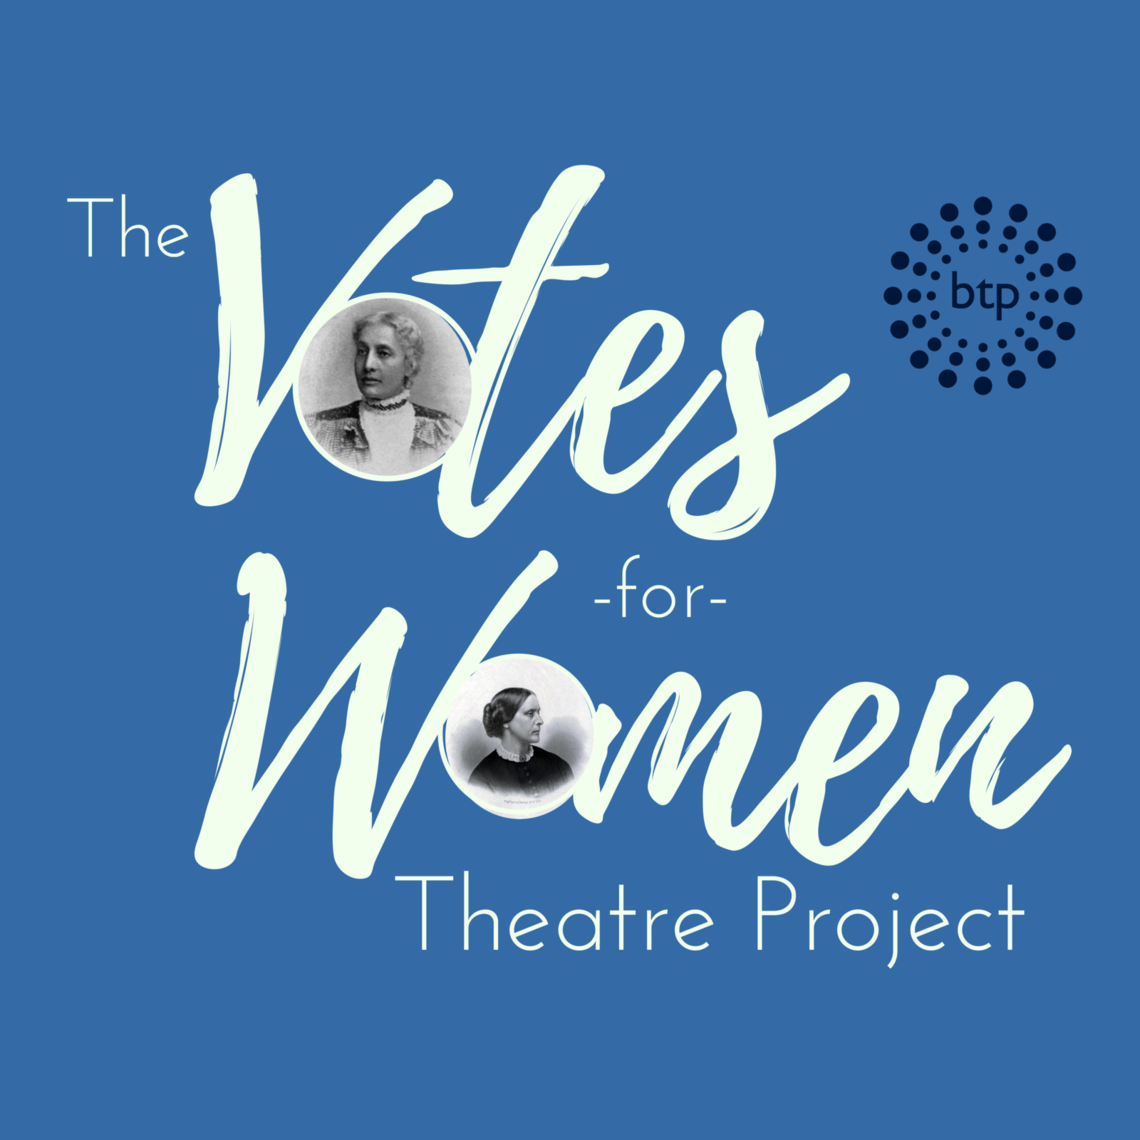 copy of votes for women banner 2